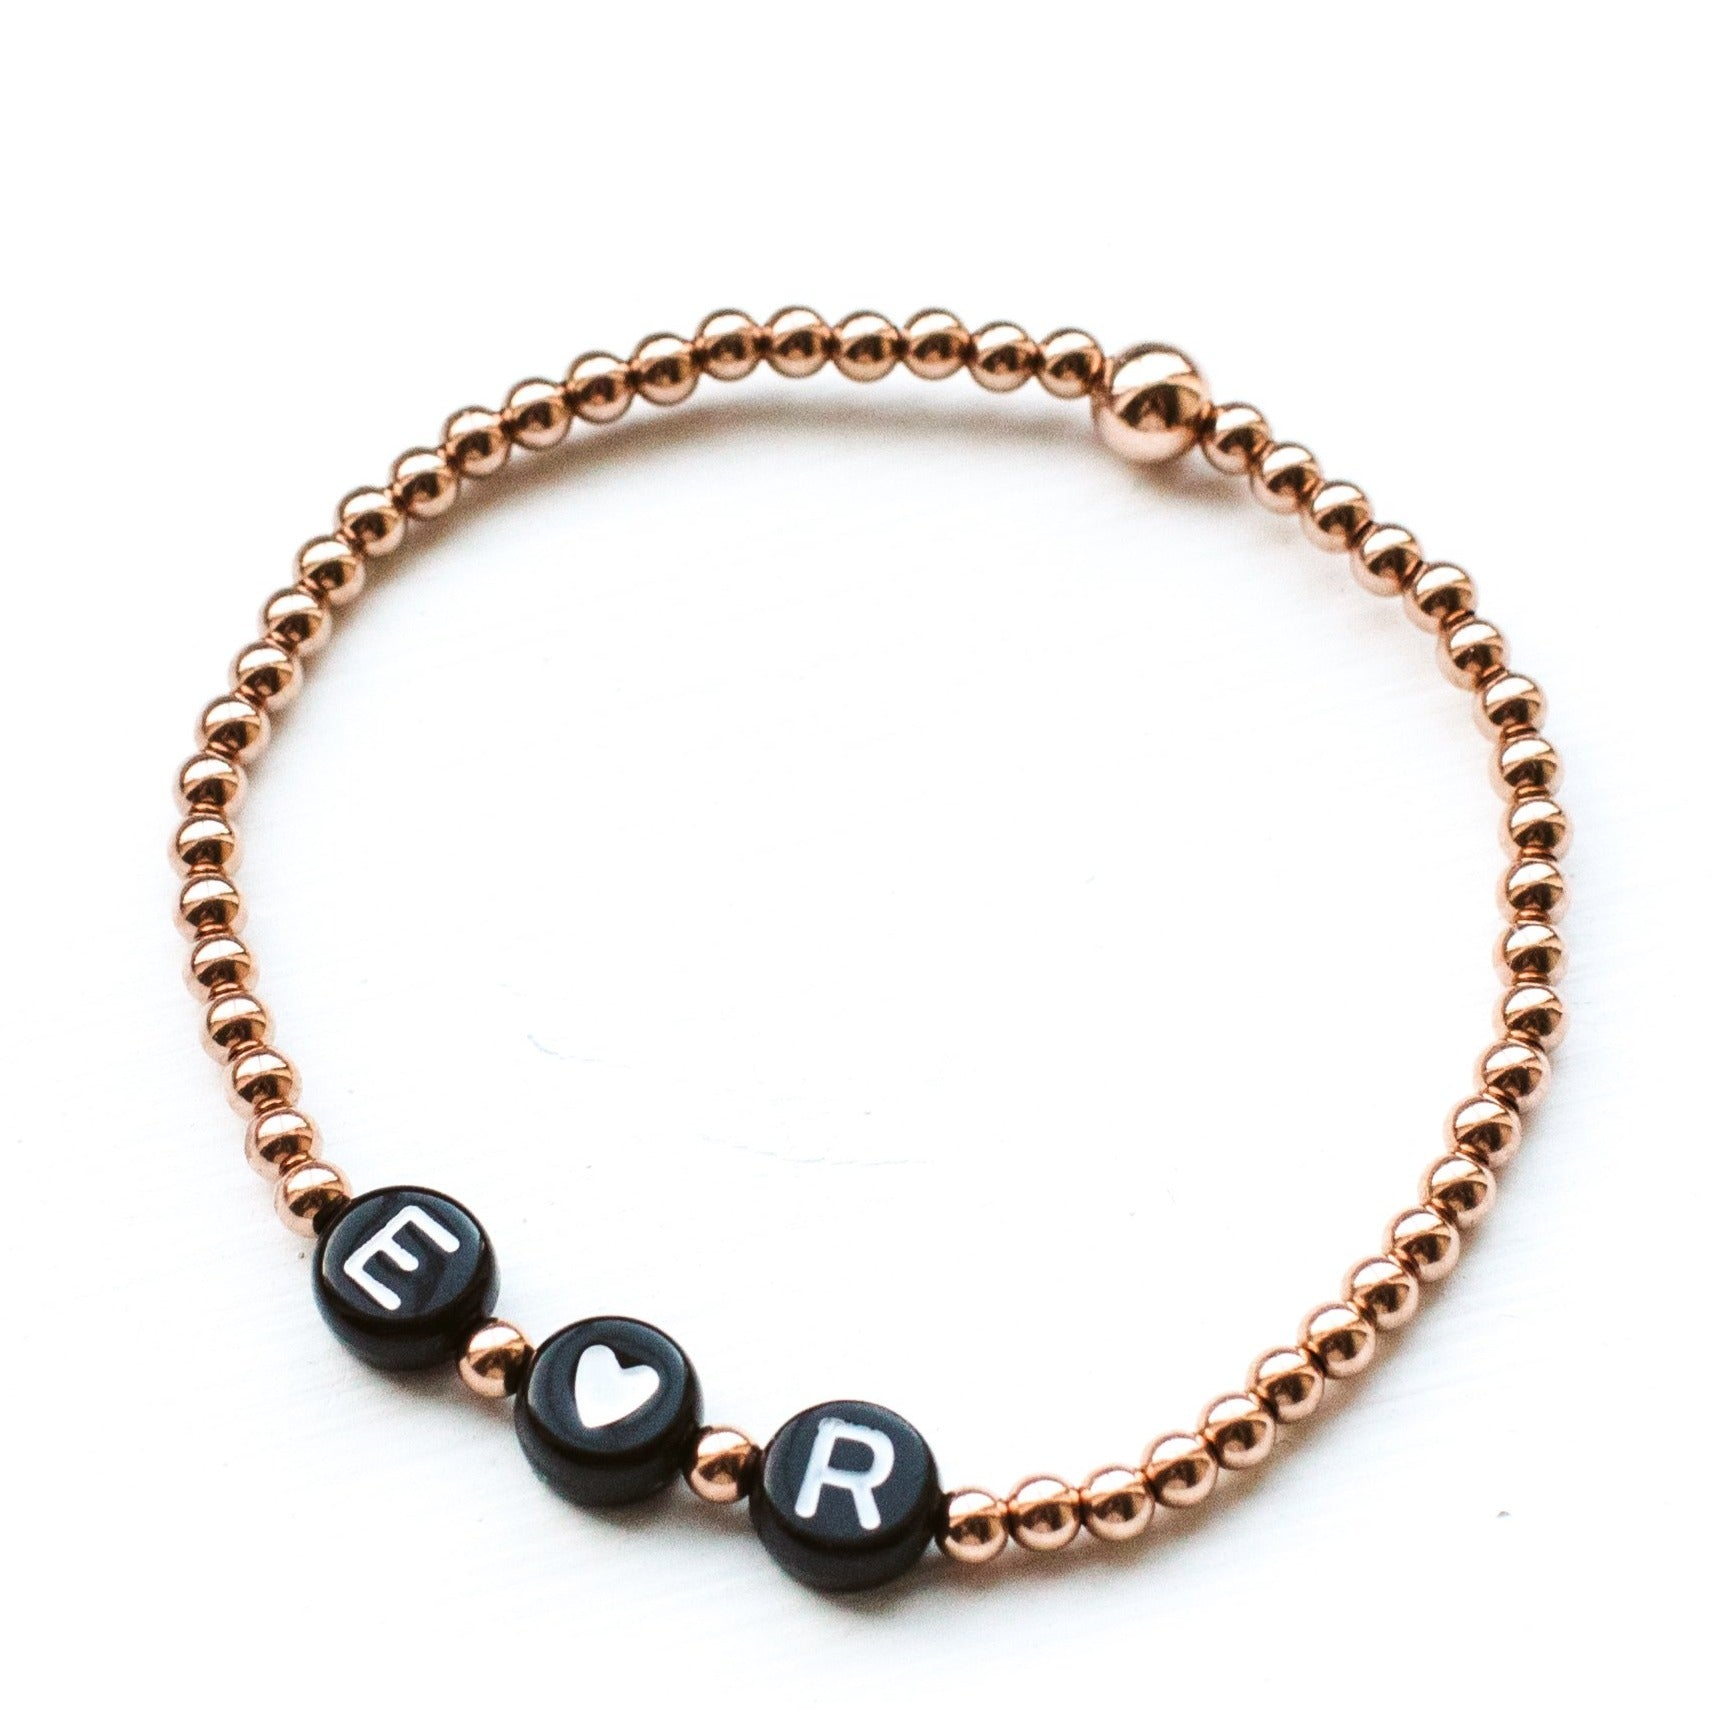 Rose Gold Filled Name Bracelet - Black